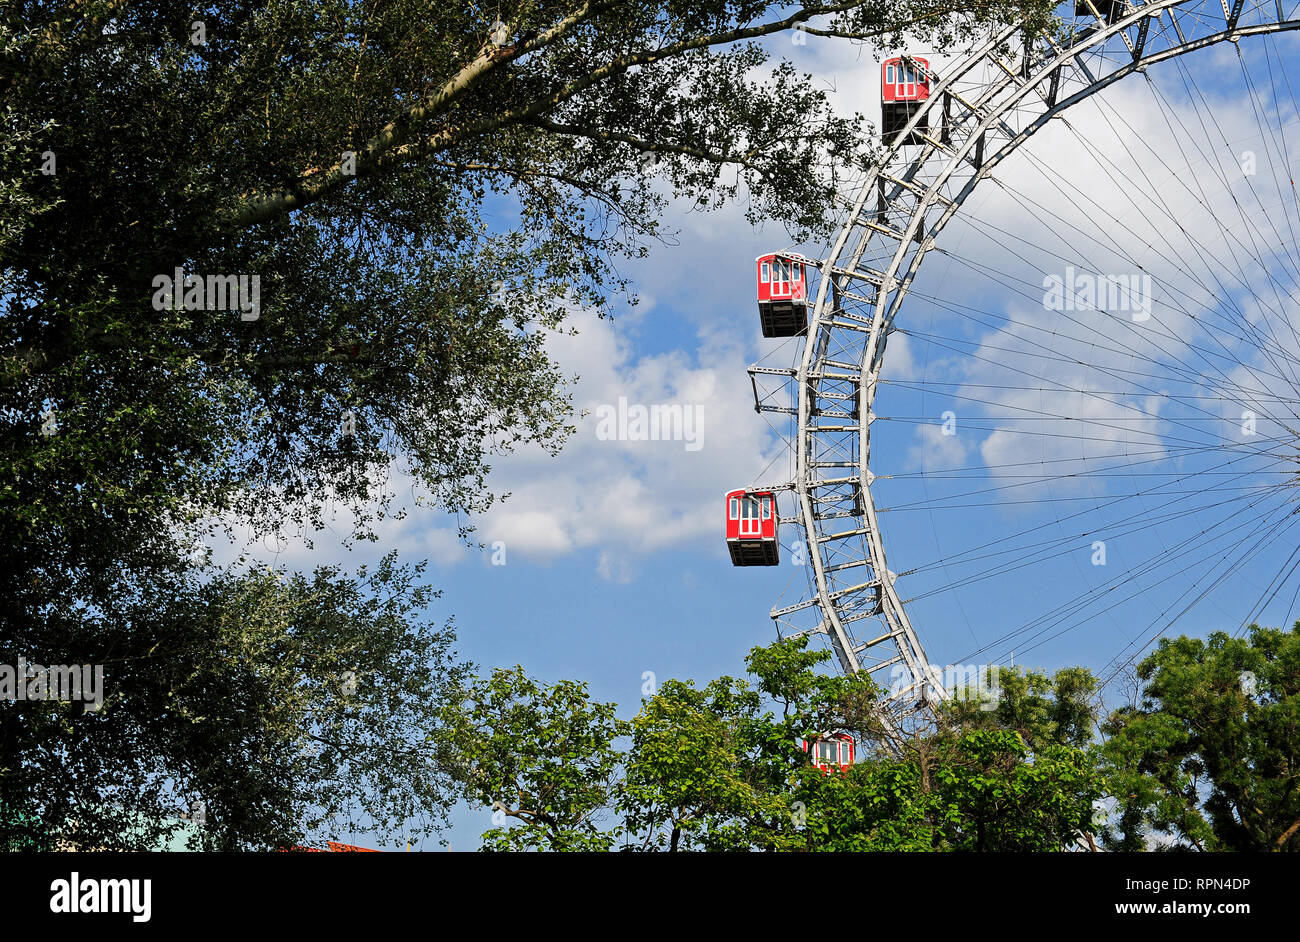 The giant Ferries Wheel (Riesenrad) at the entrance of the Prater amusement park, Vienna, Austria - Stock Image